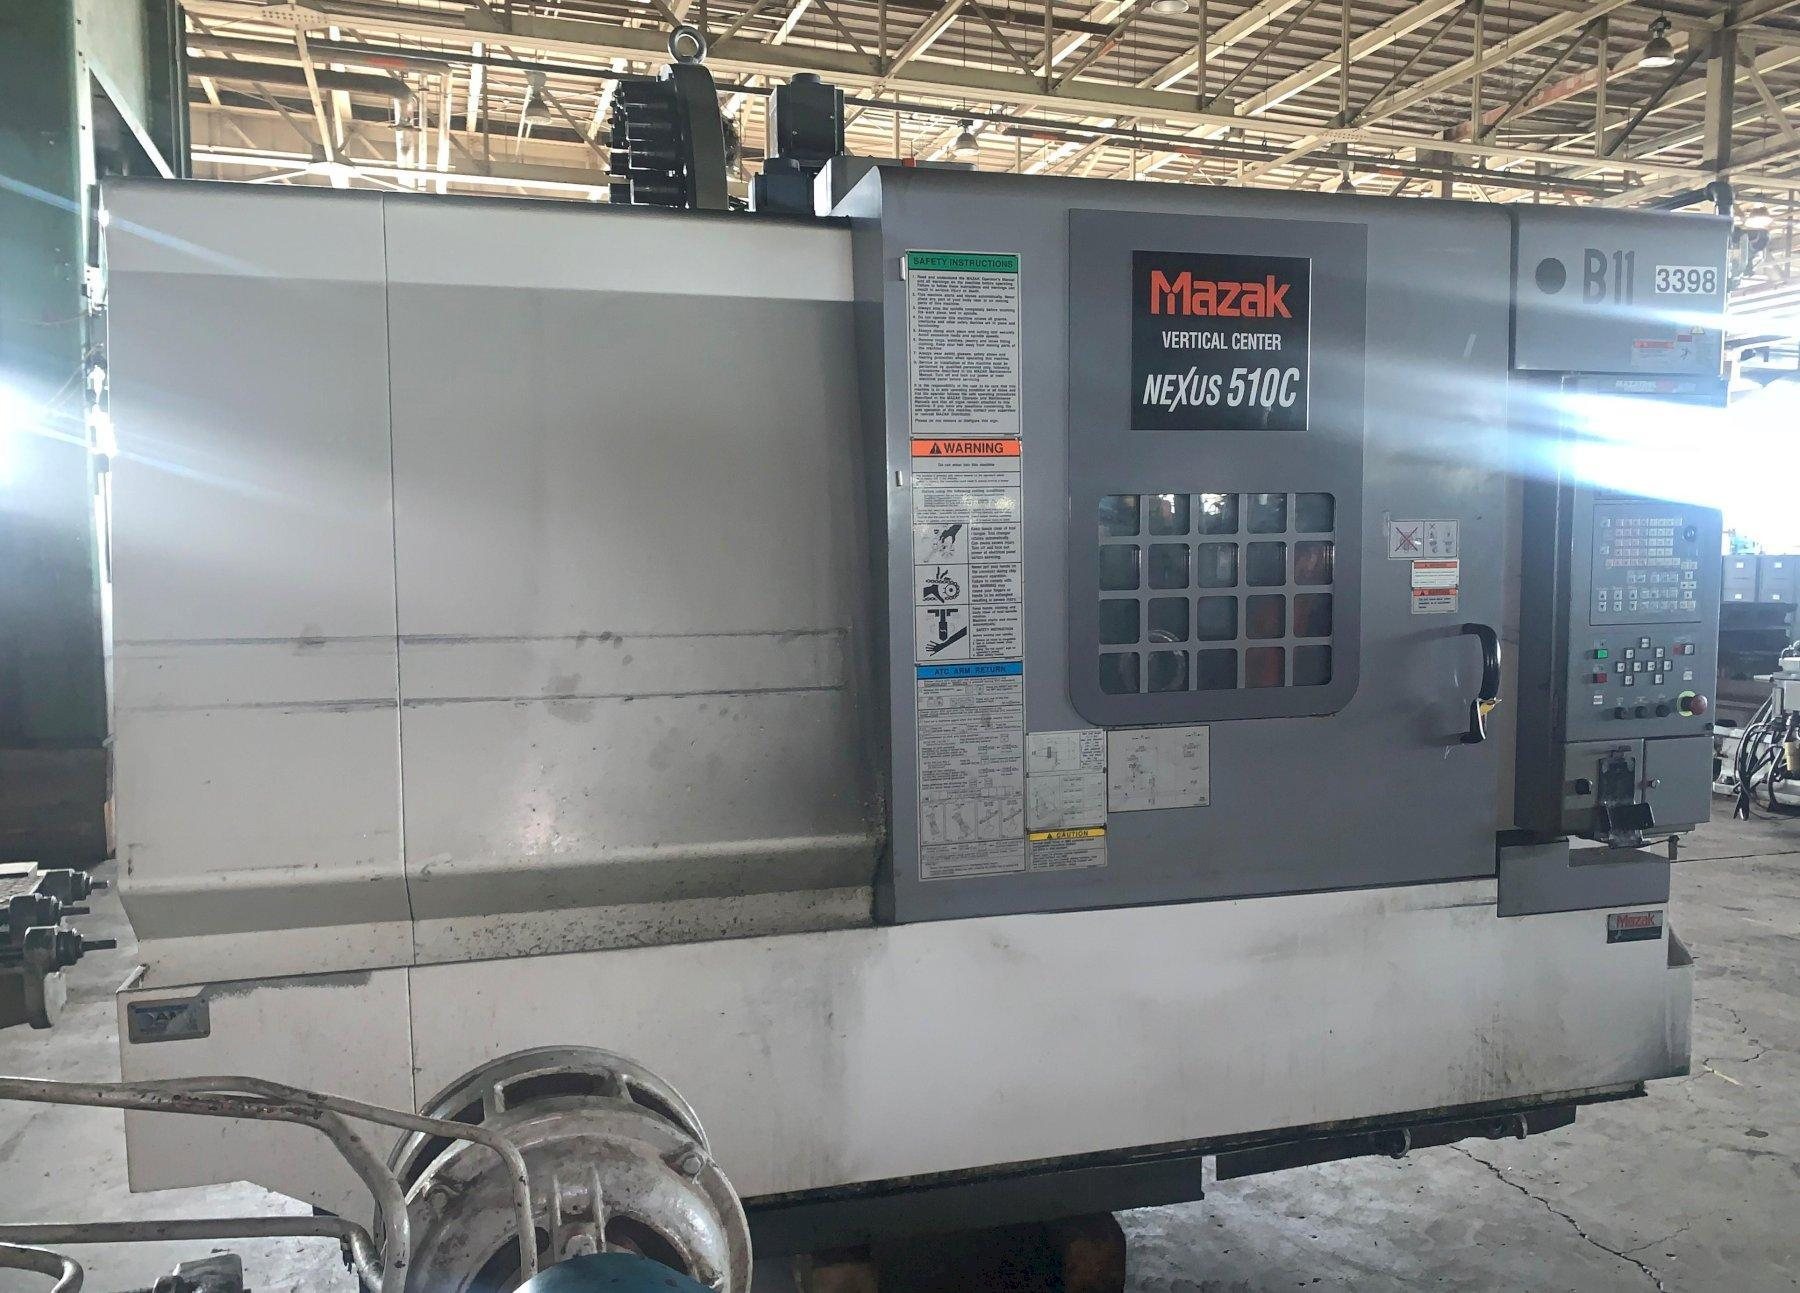 2003 MAZAK NEXUS 510C CNC VERTICAL MACHINING CENTER: STOCK #13486